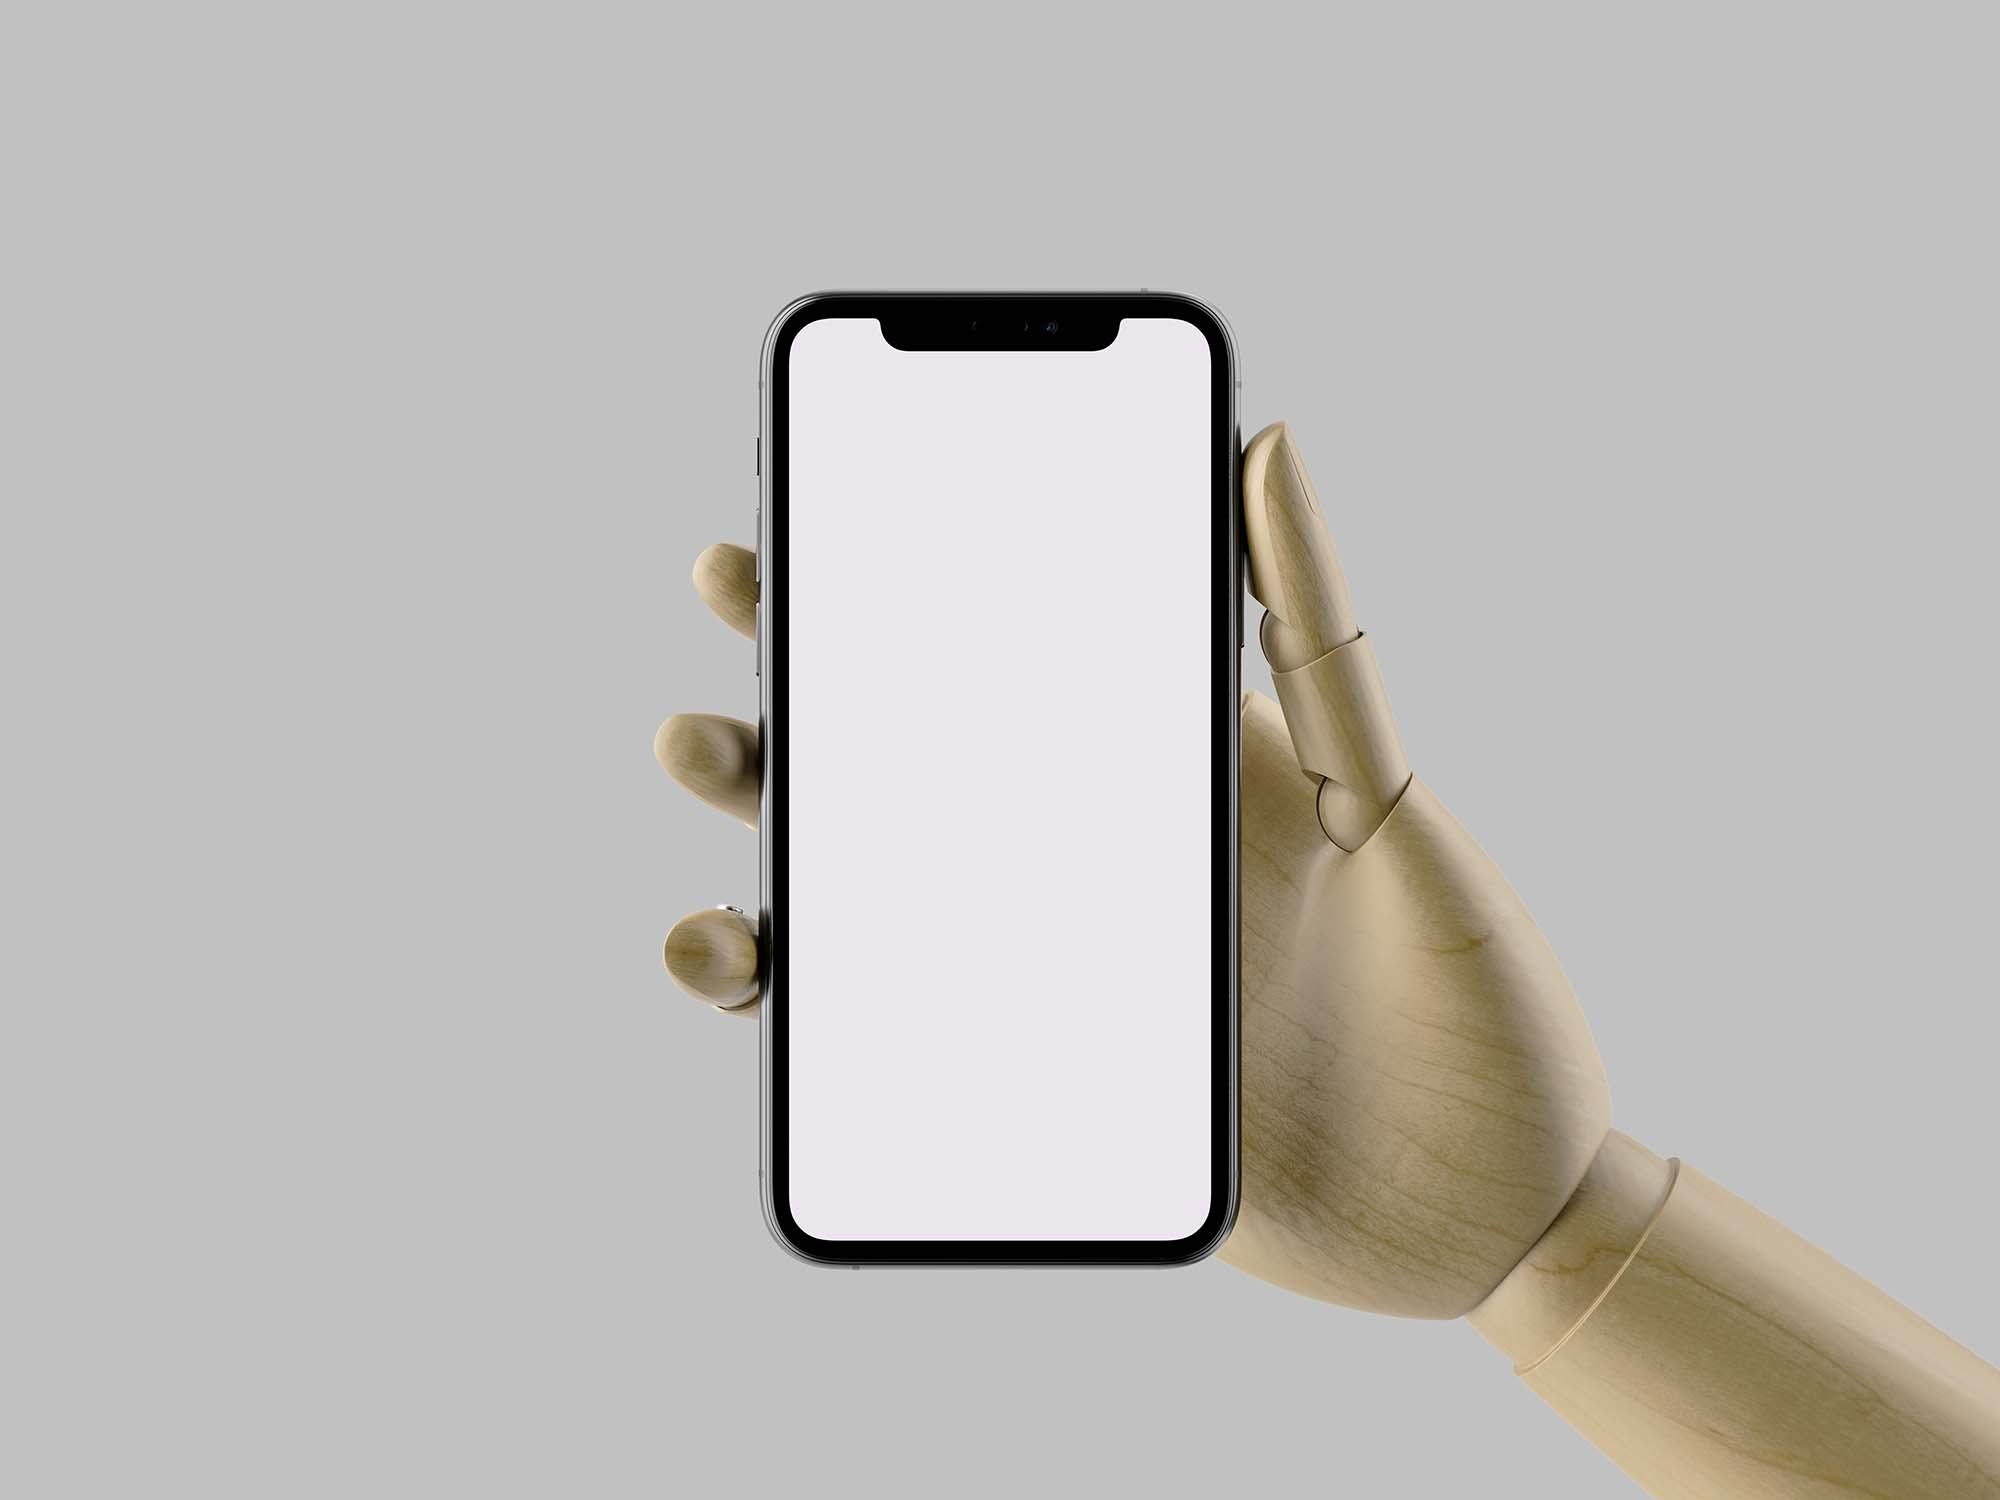 In Hand iPhone 11 Pro Max Mockup 2